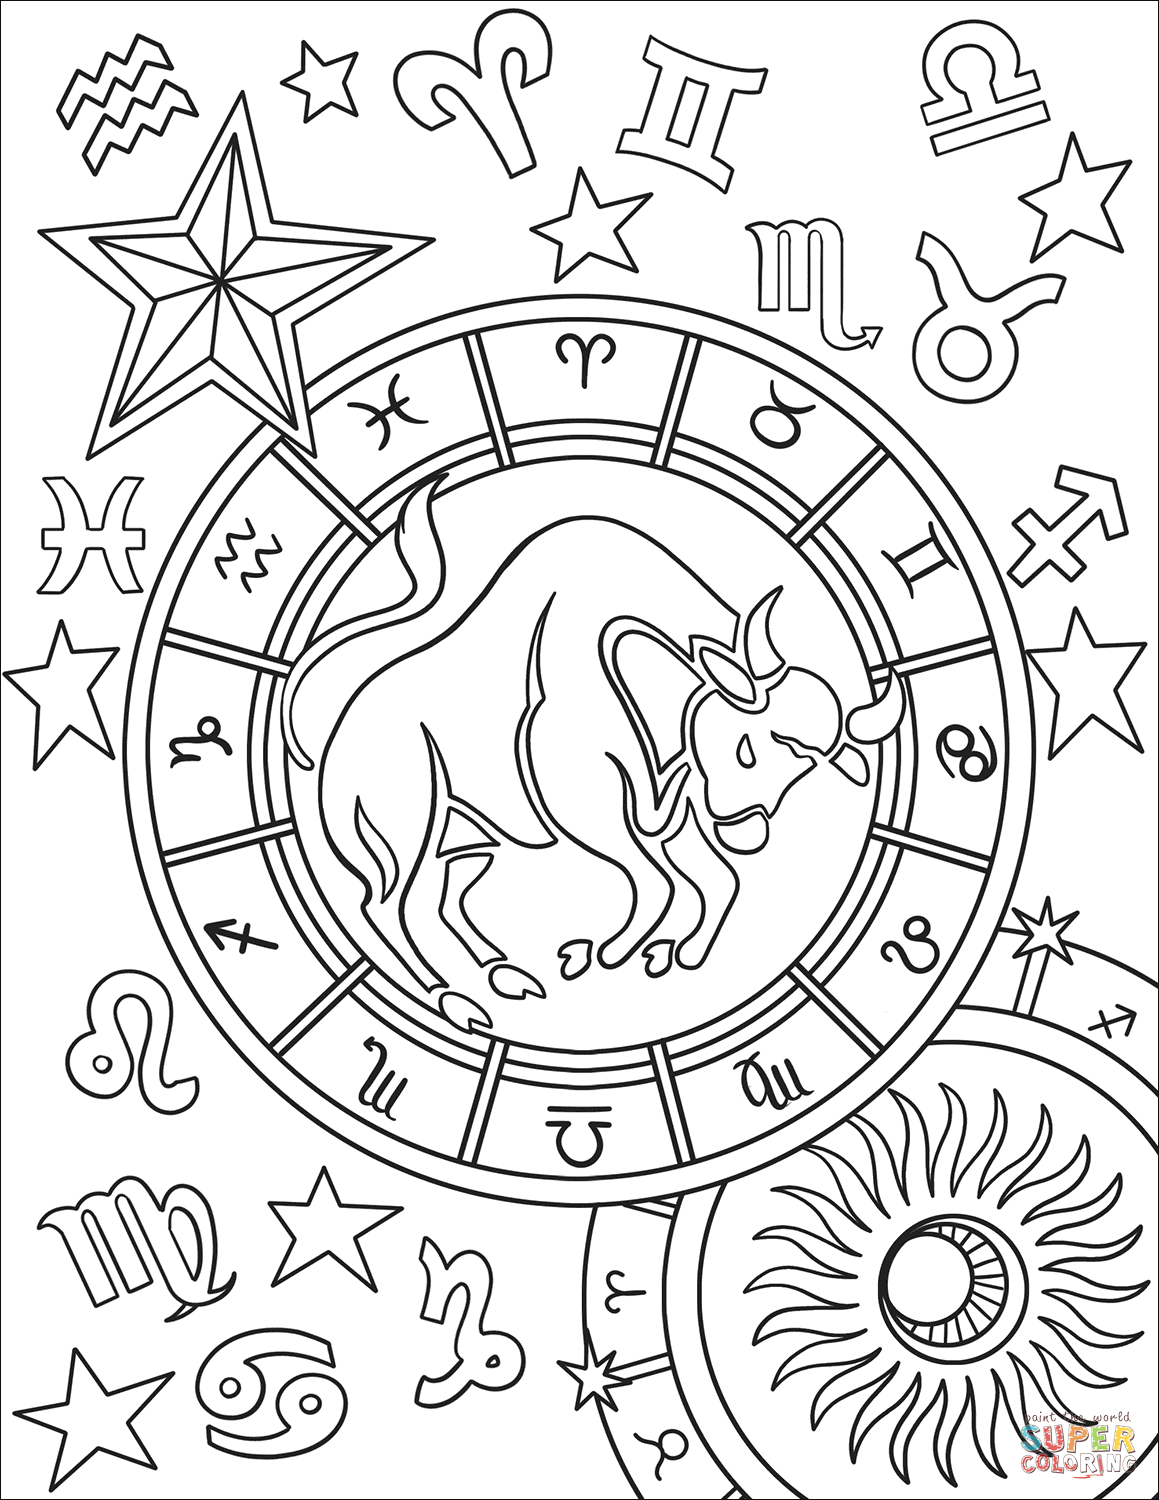 Taurus Zodiac Sign Coloring Page Free Printable Coloring Pages Witch Coloring Pages Zodiac Signs Colors Coloring Pages